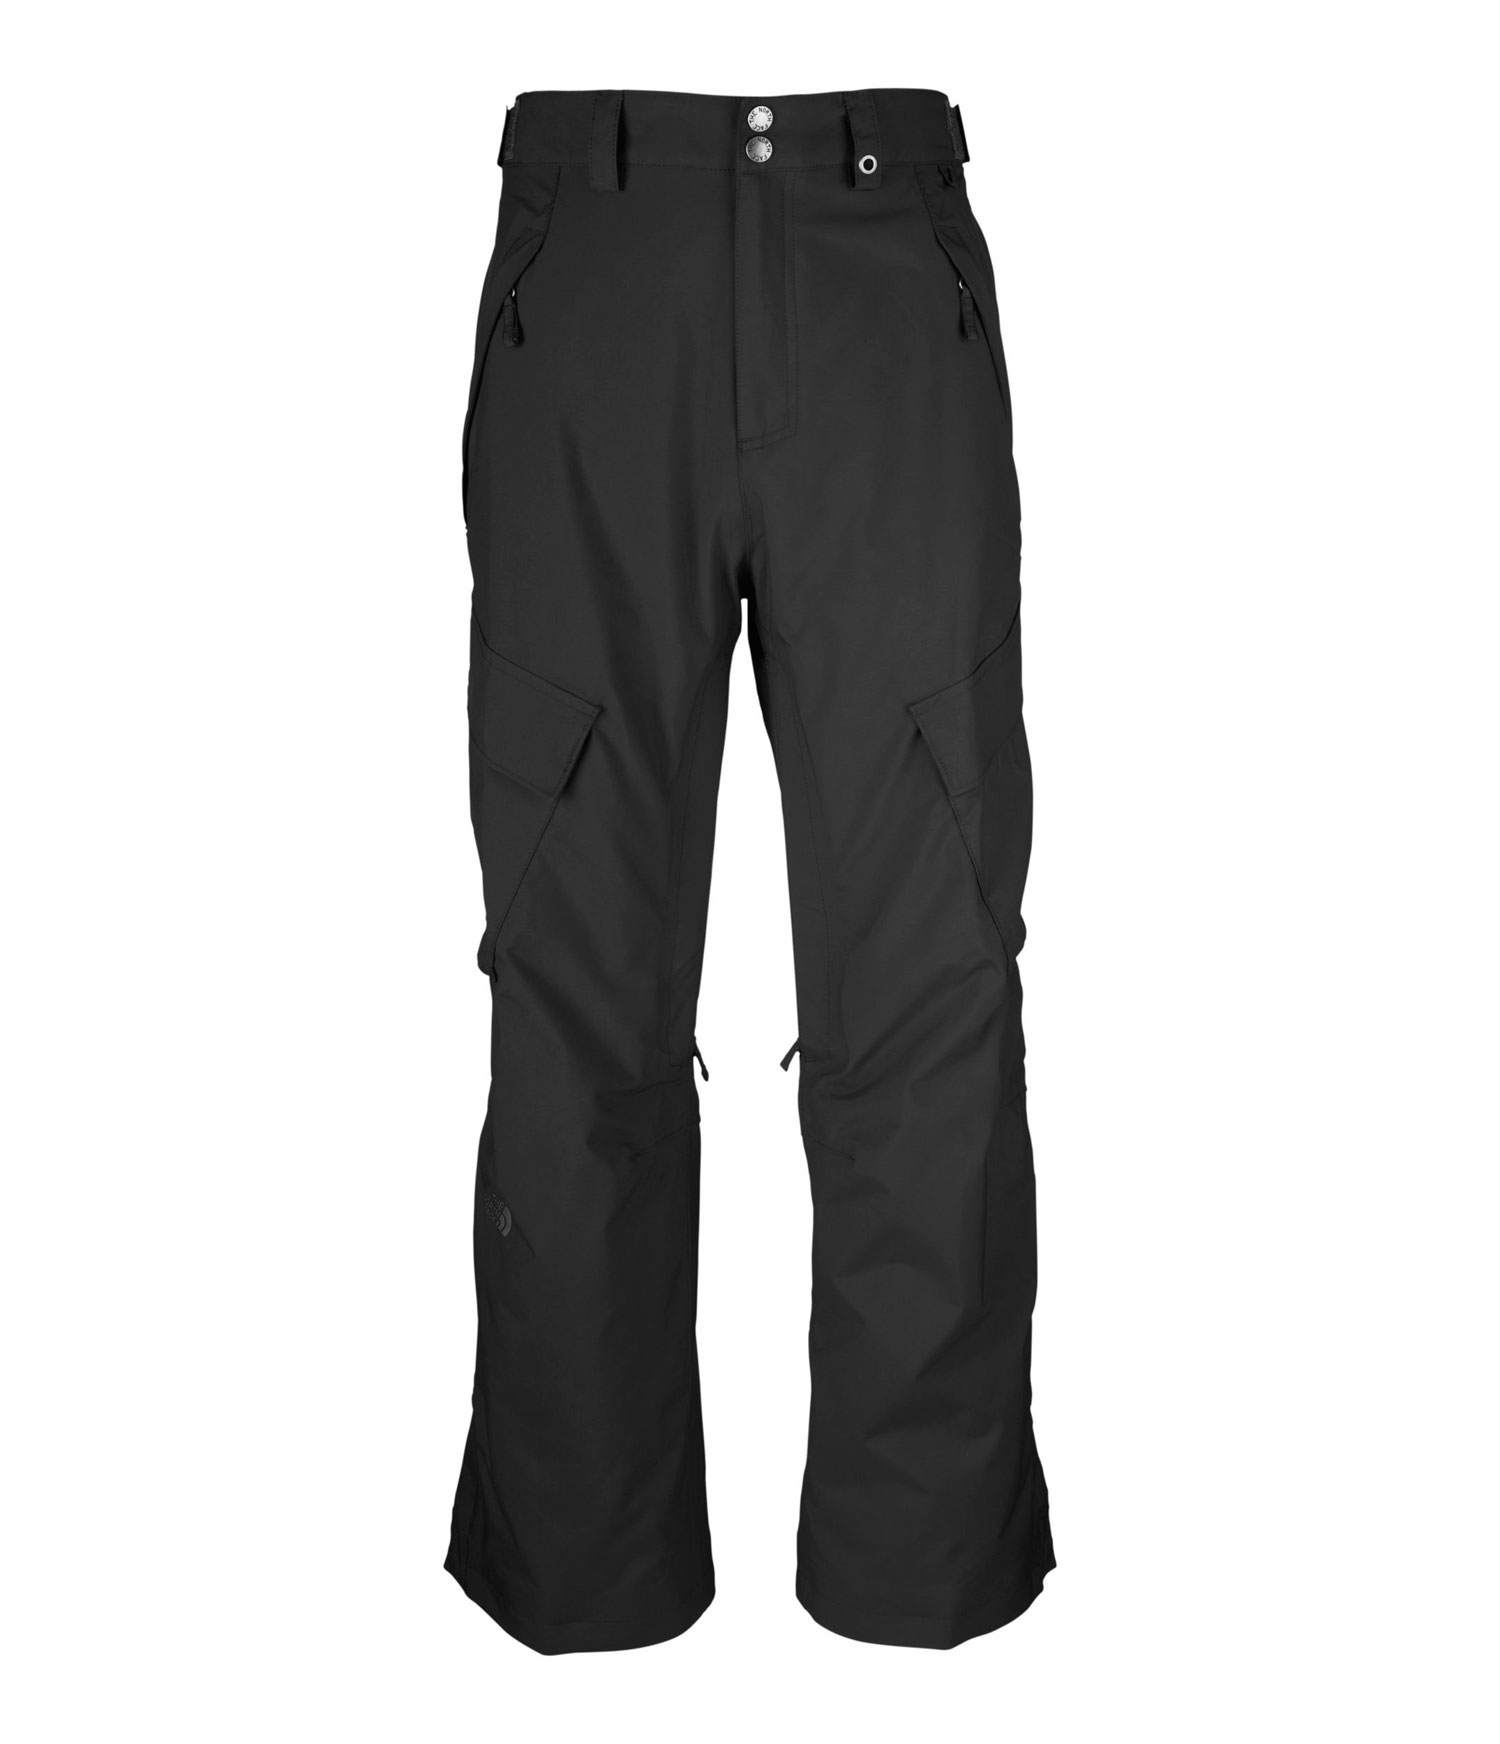 "Ski Straightforward all-around winter protection built with waterproof, breathable HyVent and an insulated seat and knees. Key Features of The North Face Slasher Cargo Ski Pants: Avg Weight: 820 g (28.92 oz) Inseam: R 31"", L 33 Fabric: shell: HyVent 2L proweave Lining: Thermoliner seat and knees, mesh Adjustable waist tabs Zip handwarmer pockets Flap cargo pockets with Lot Lift System Zip inner thigh vents with mesh gussets Back pockets Gaiter with gripper elastic and boot hook Snap-cuff gussets Reinforced edge guards - $111.95"